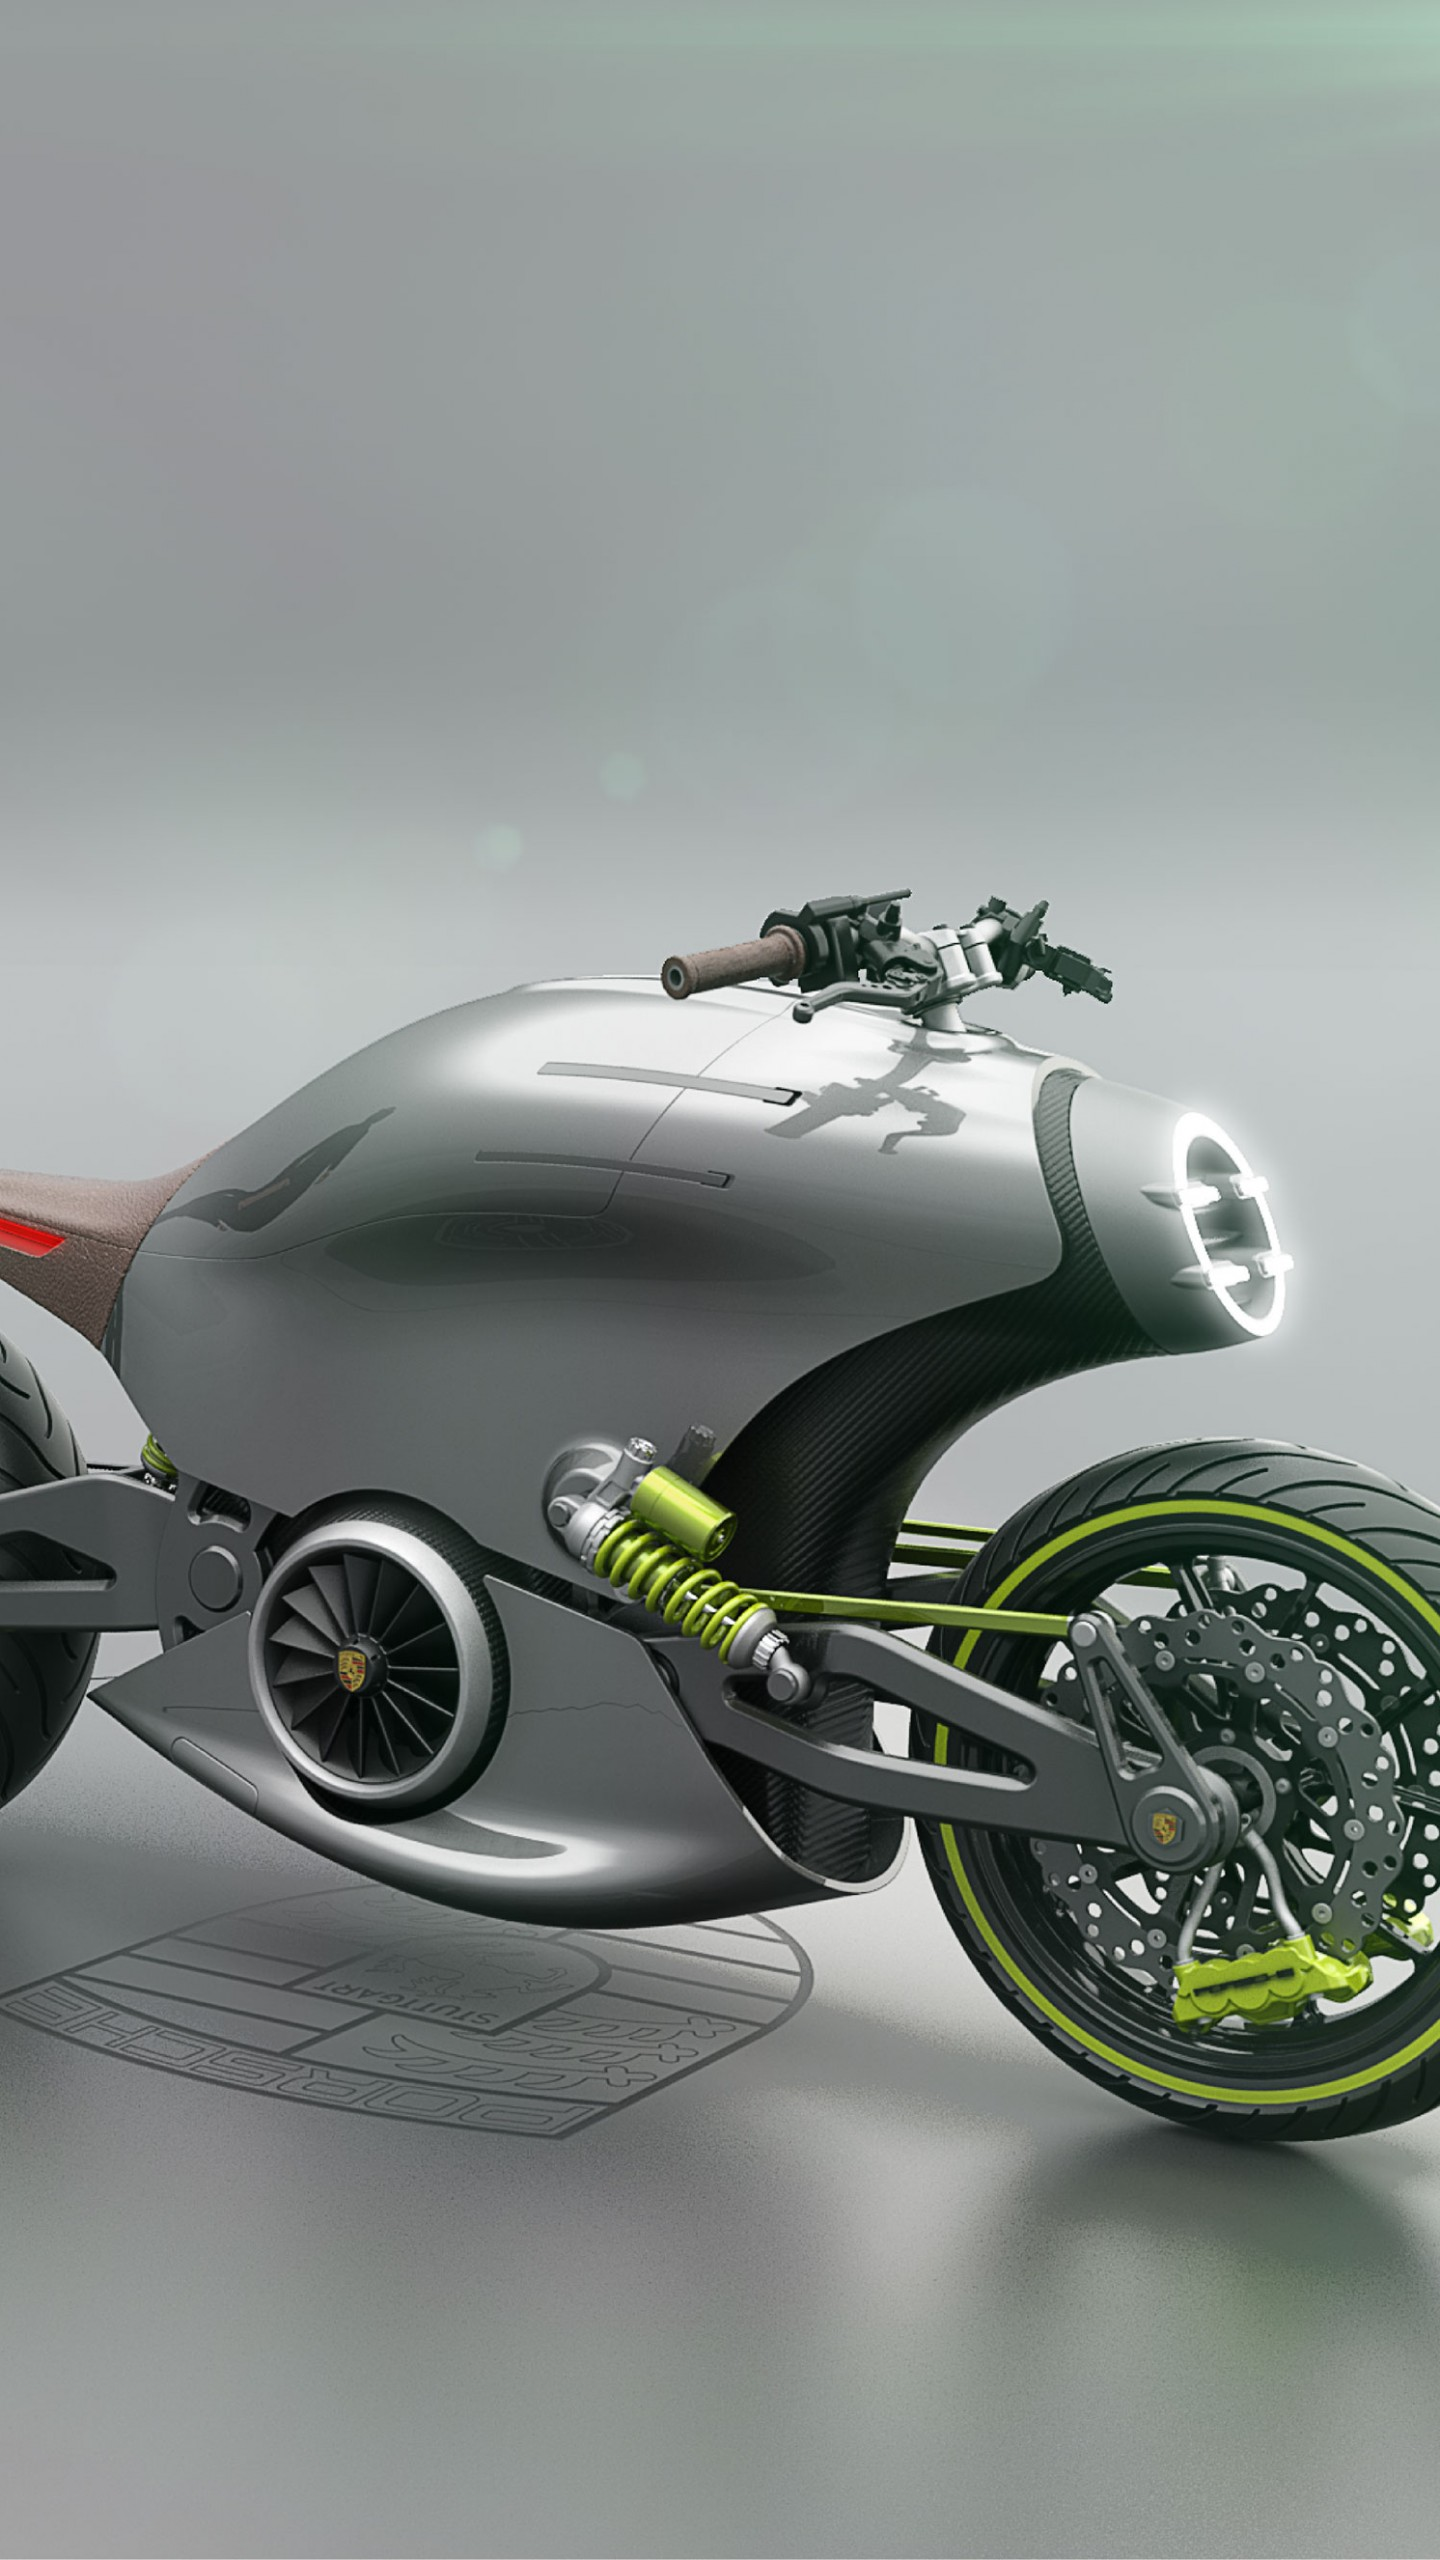 The Best 3d Wallpaper Wallpaper Porsche 618 Electric Motorcycle 4k Cars